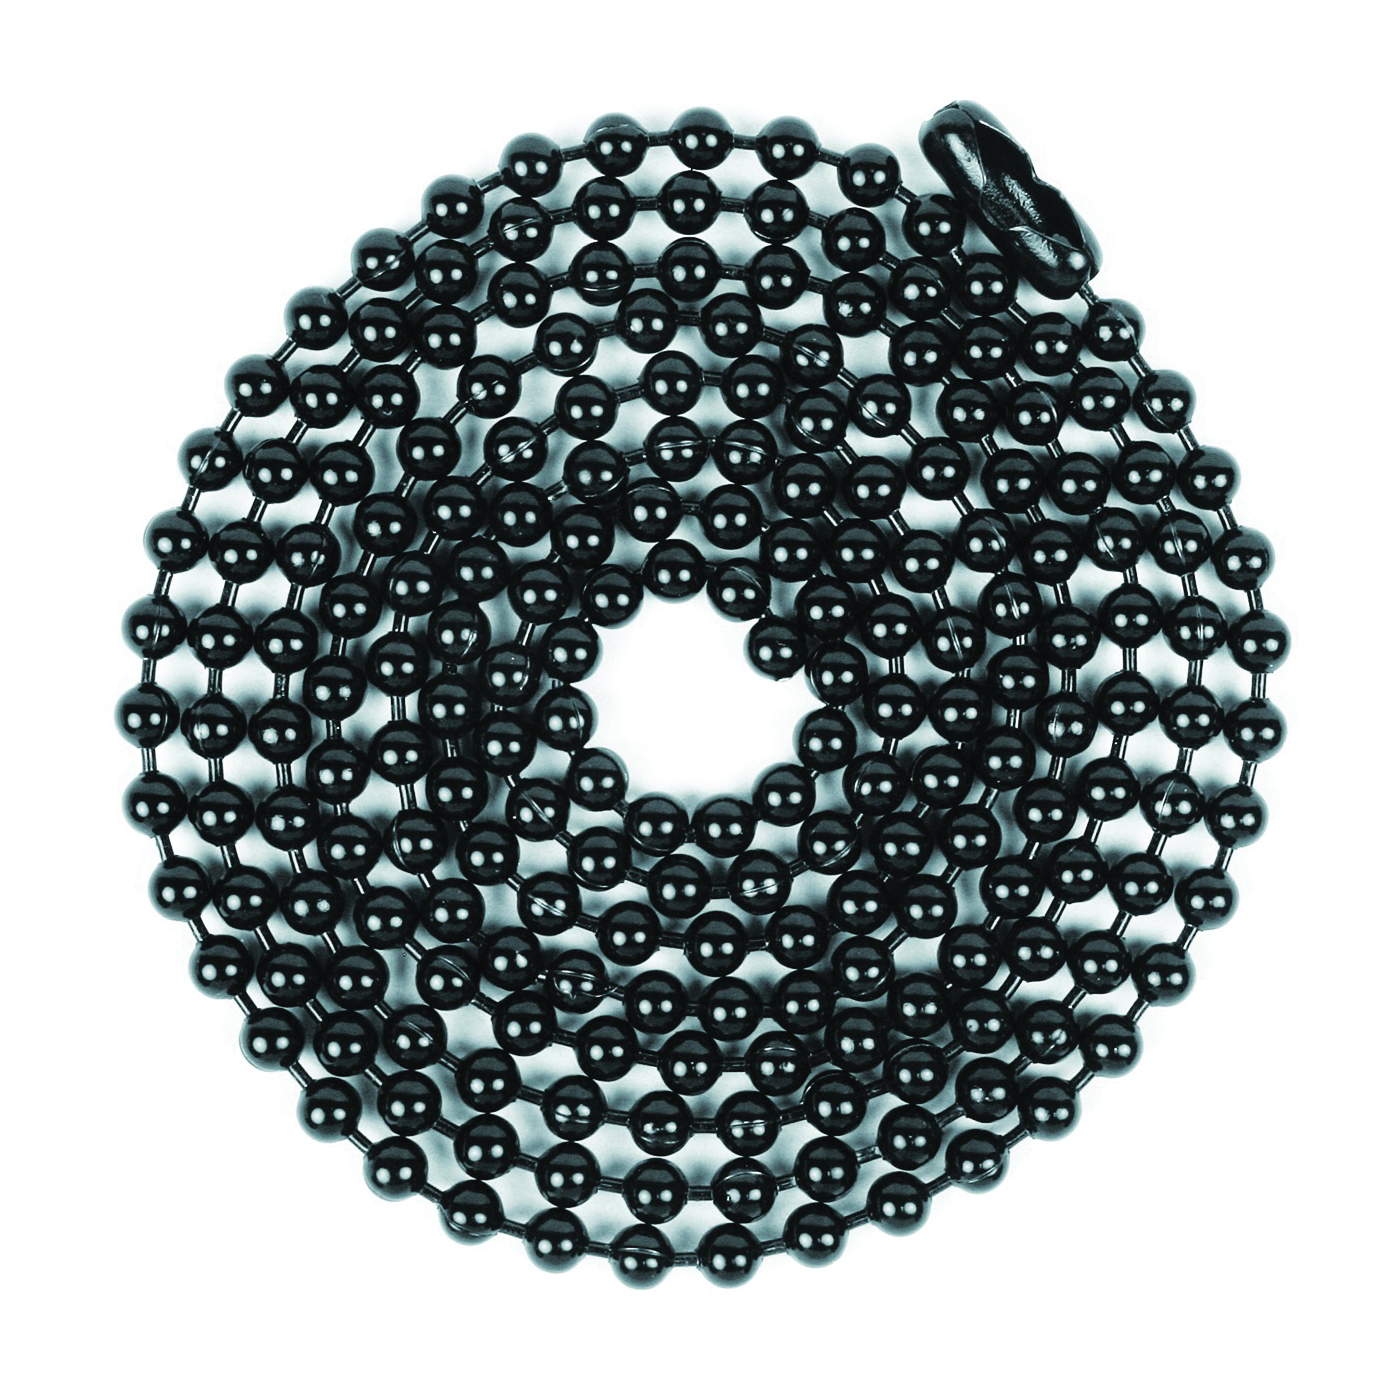 Picture of Jandorf 60371 Beaded Chain with Connector, 3 ft L, Black